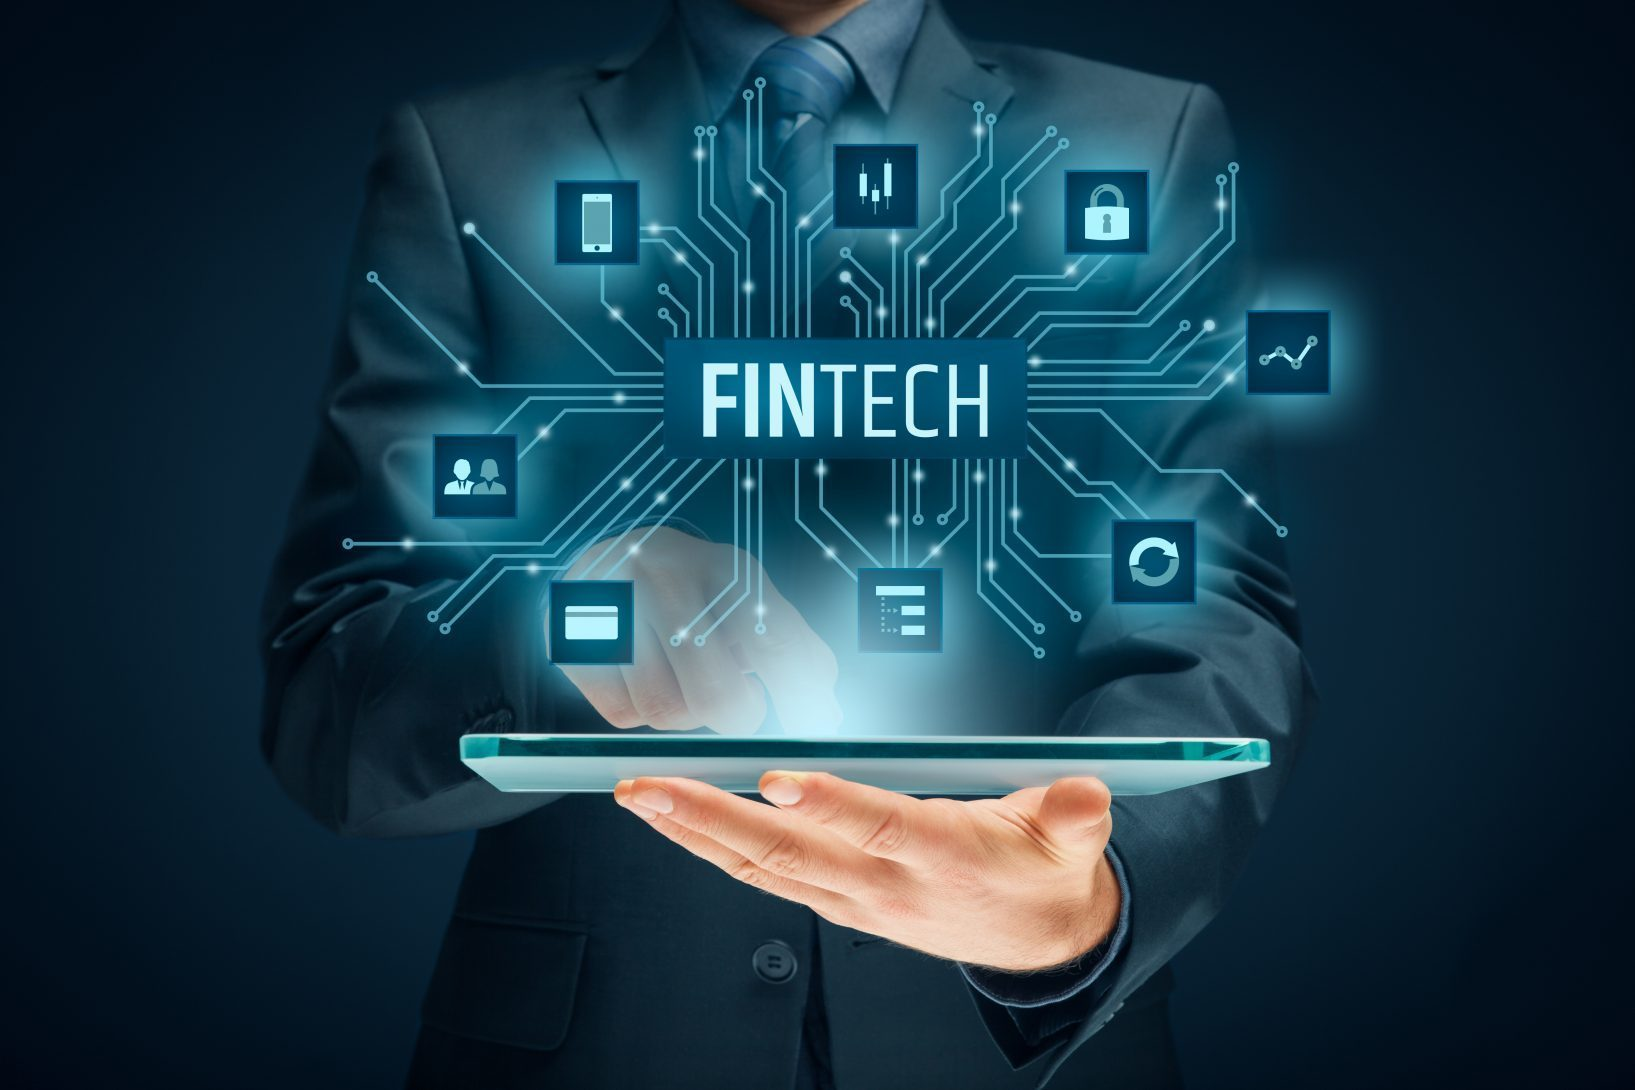 FinTech could reduce the cost of remittances to Latin America